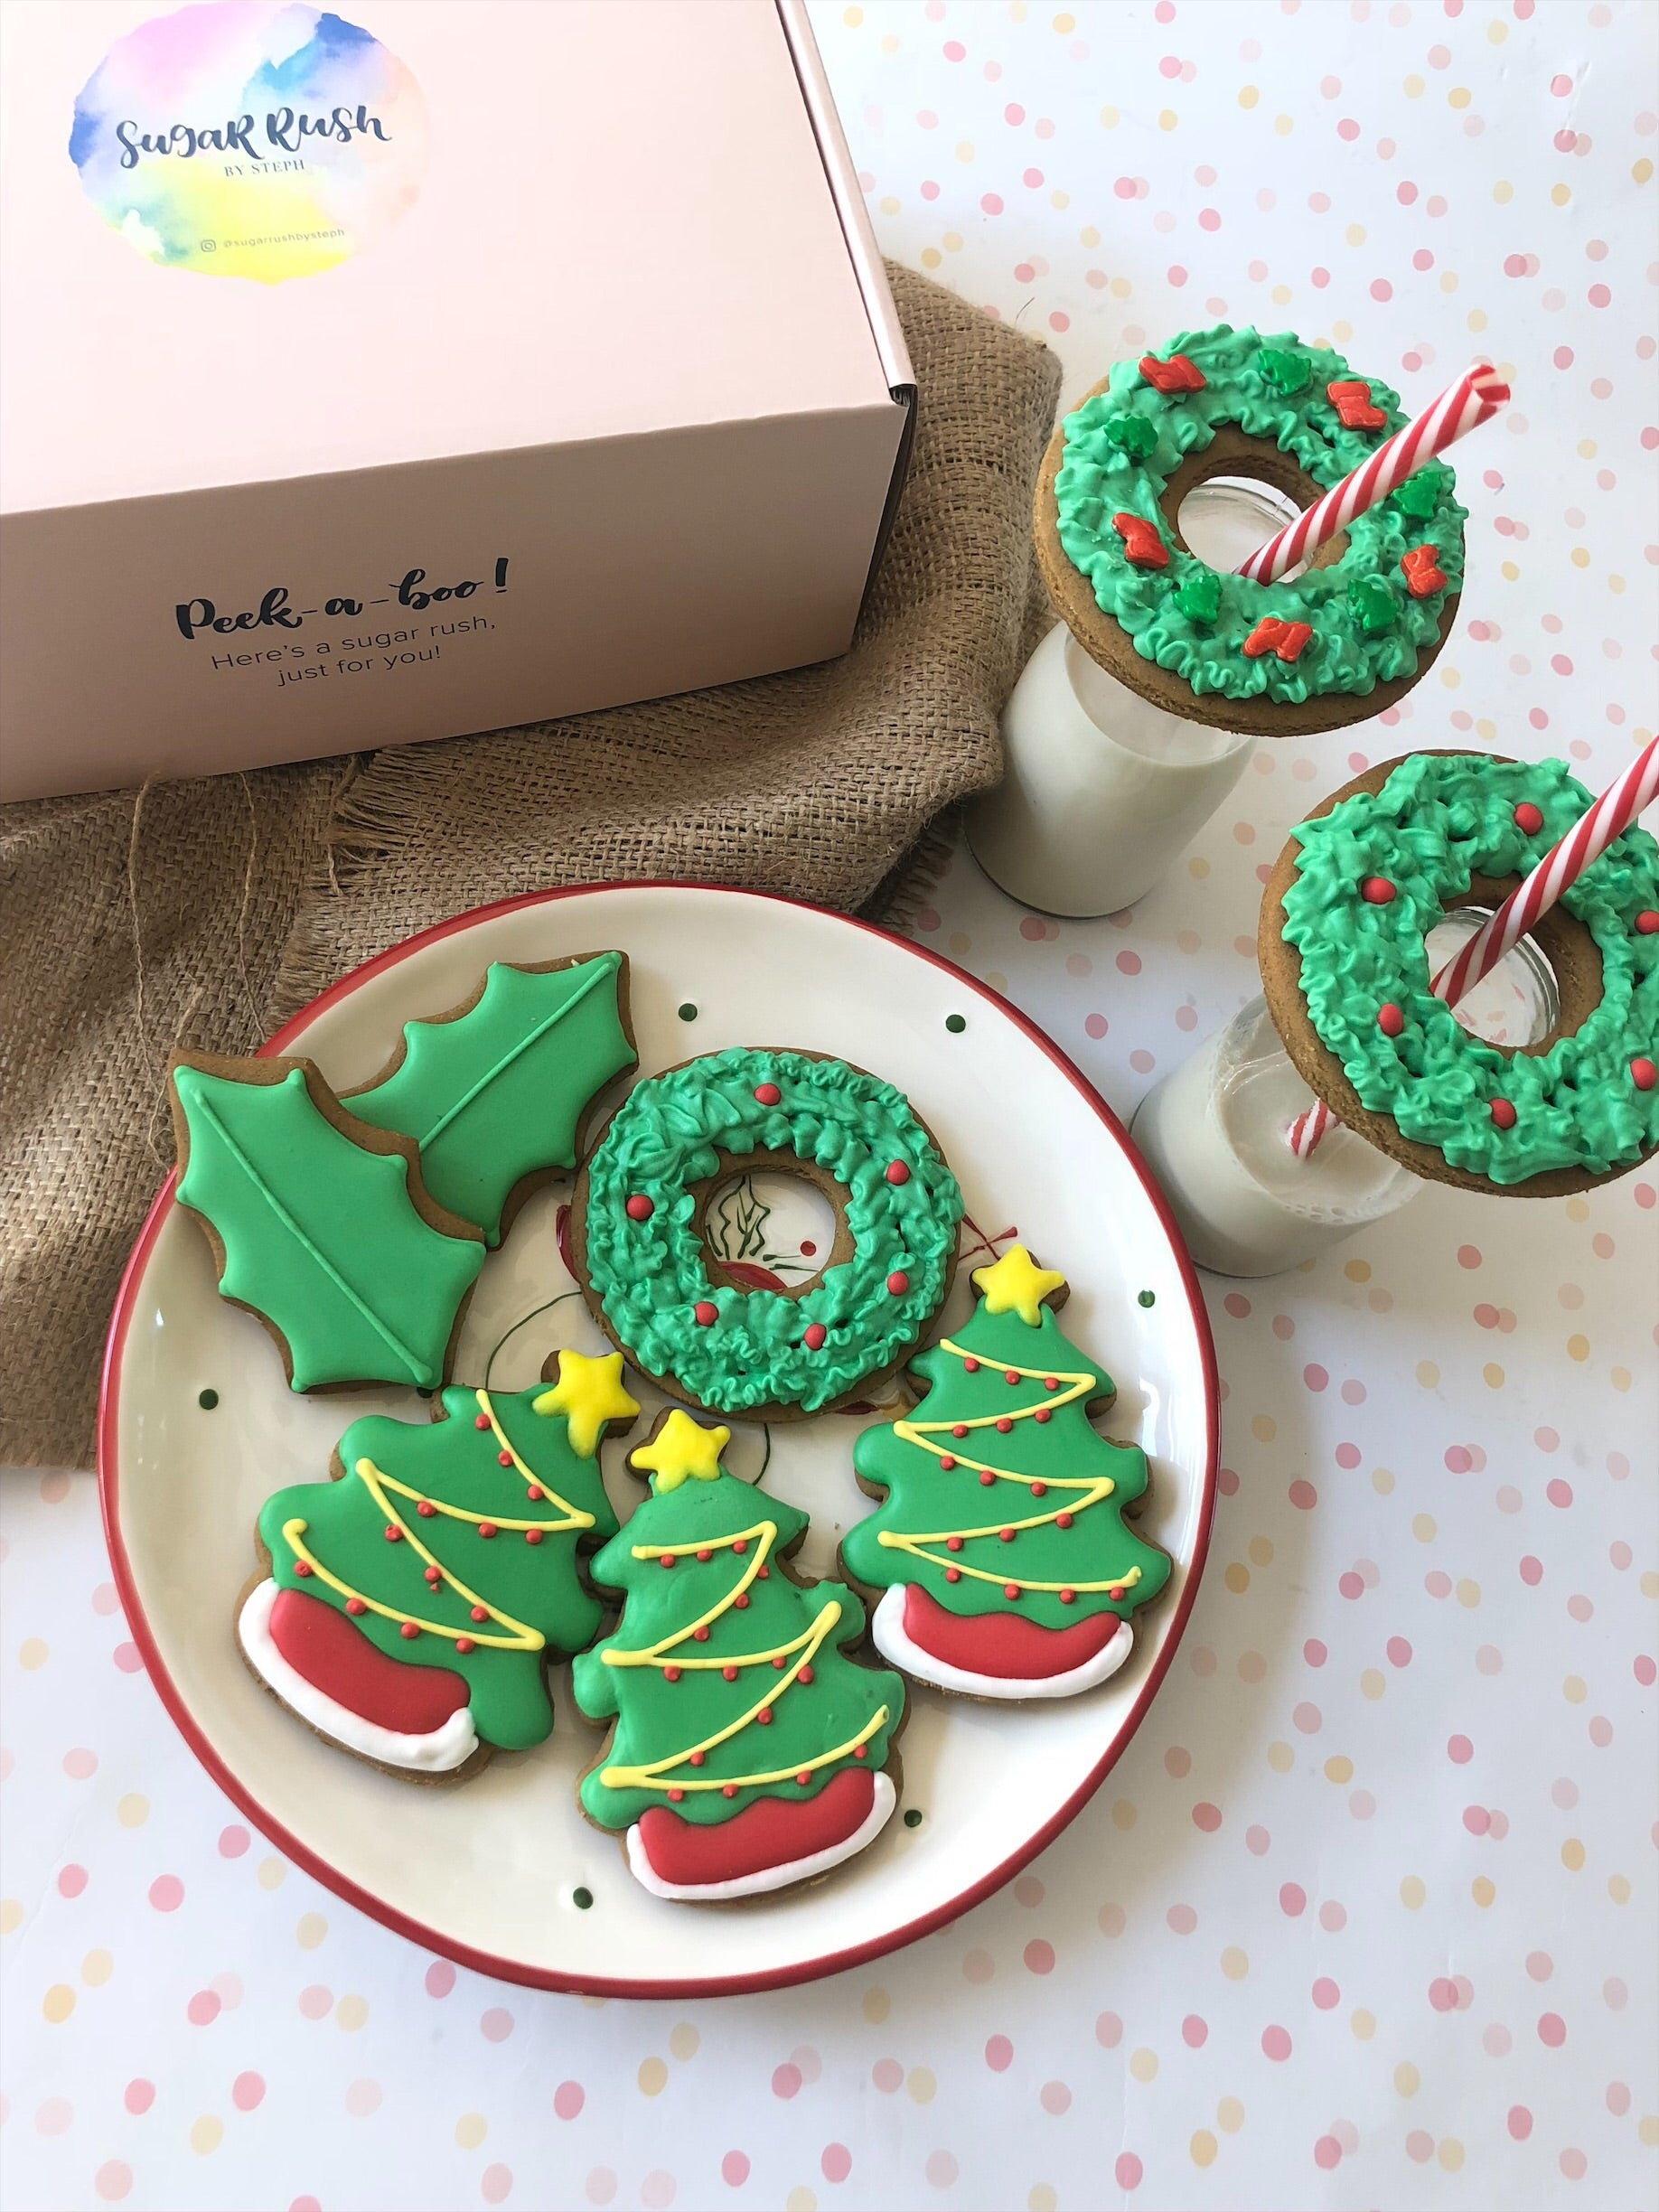 Christmas In The Air! - Sugar Rush by Steph